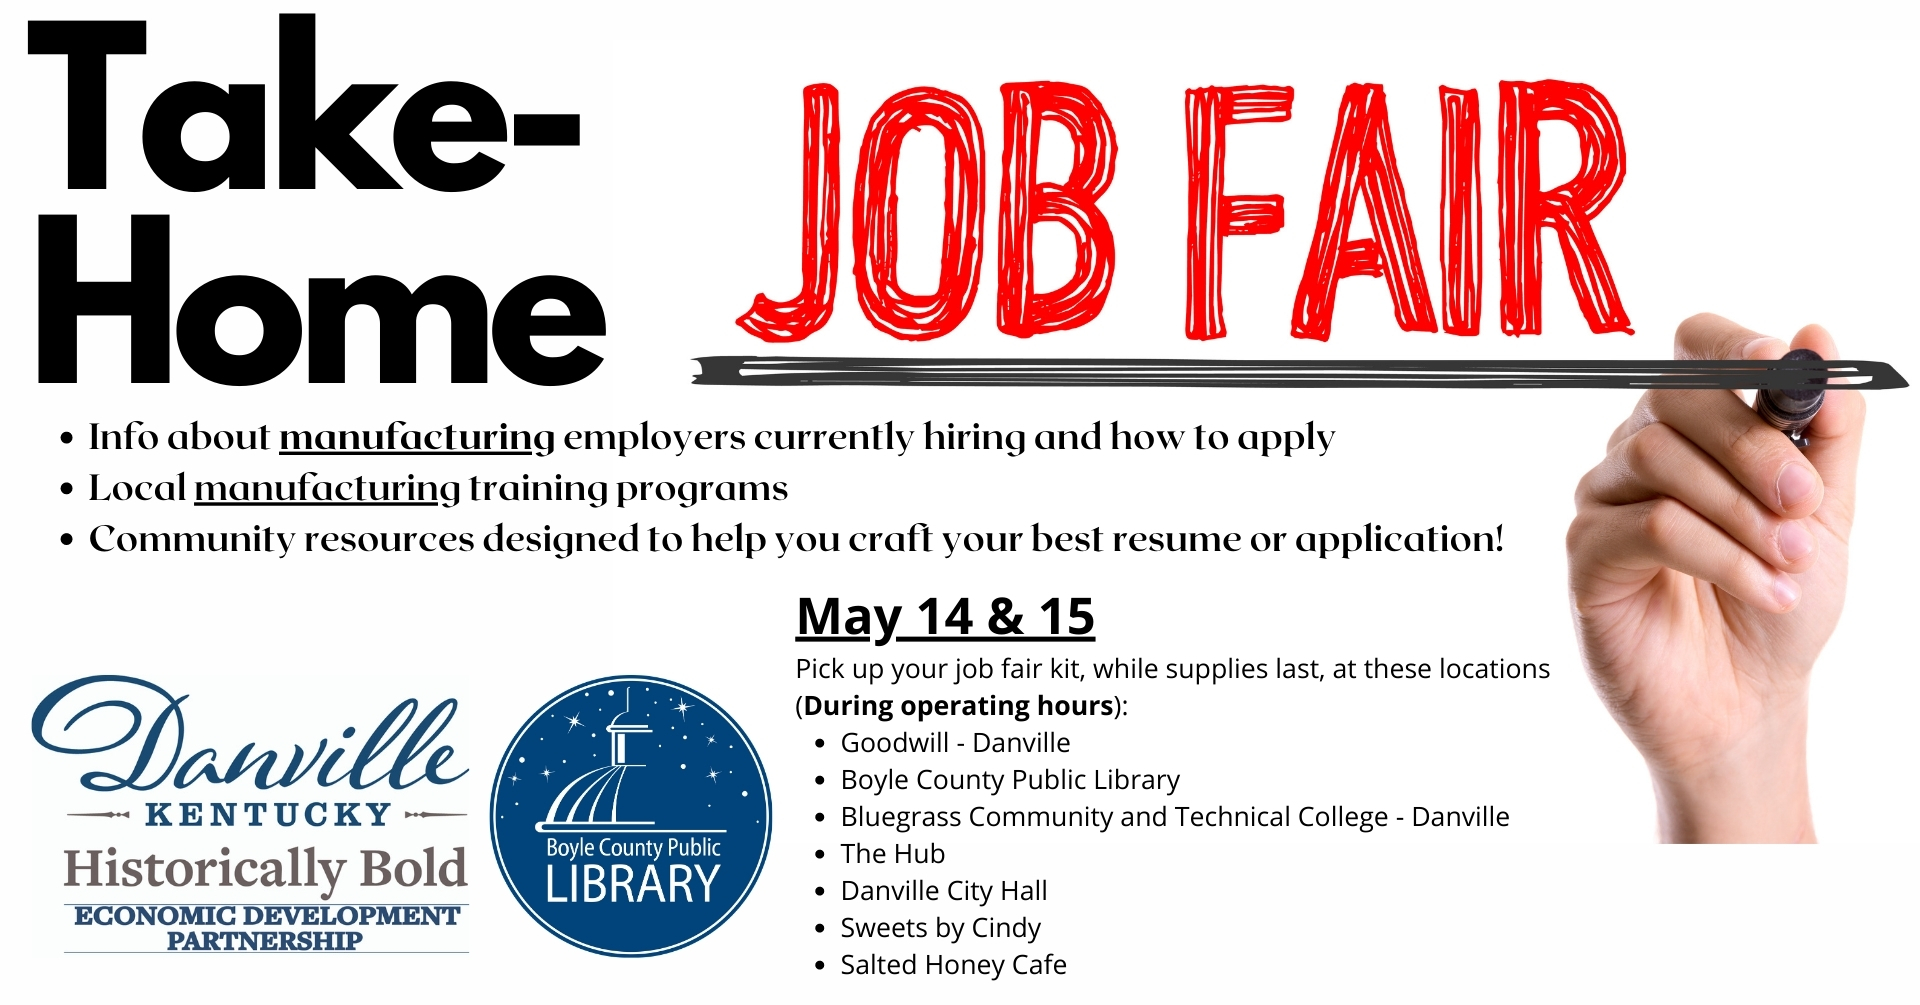 Take Home Job Fair - Manufacturing Employers. Information about current employers hiring, training programs, and community resources to help with resumes and applications. May 14 and 15, pickup your job fair kit, while supplies last, at these locations (During operating hours): Goodwill - Danville, Boyle County Public Library, Bluegrass Community and Technical College - Danville, The Hub, Danville City Hall, Sweets by Cindy, and Salted Honey Cafe.